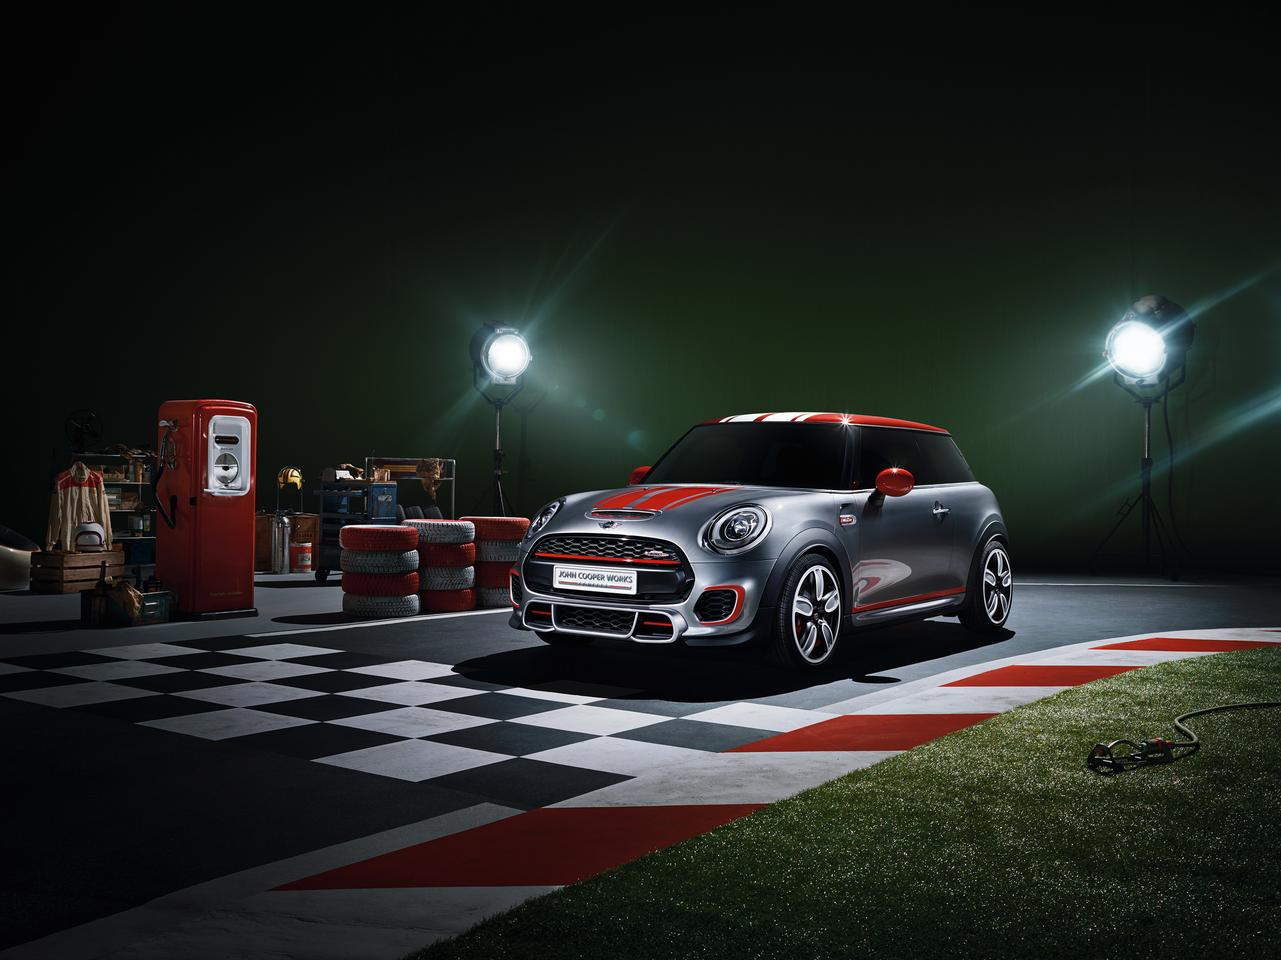 The Mini John Cooper Works concept ephasizes racing accents